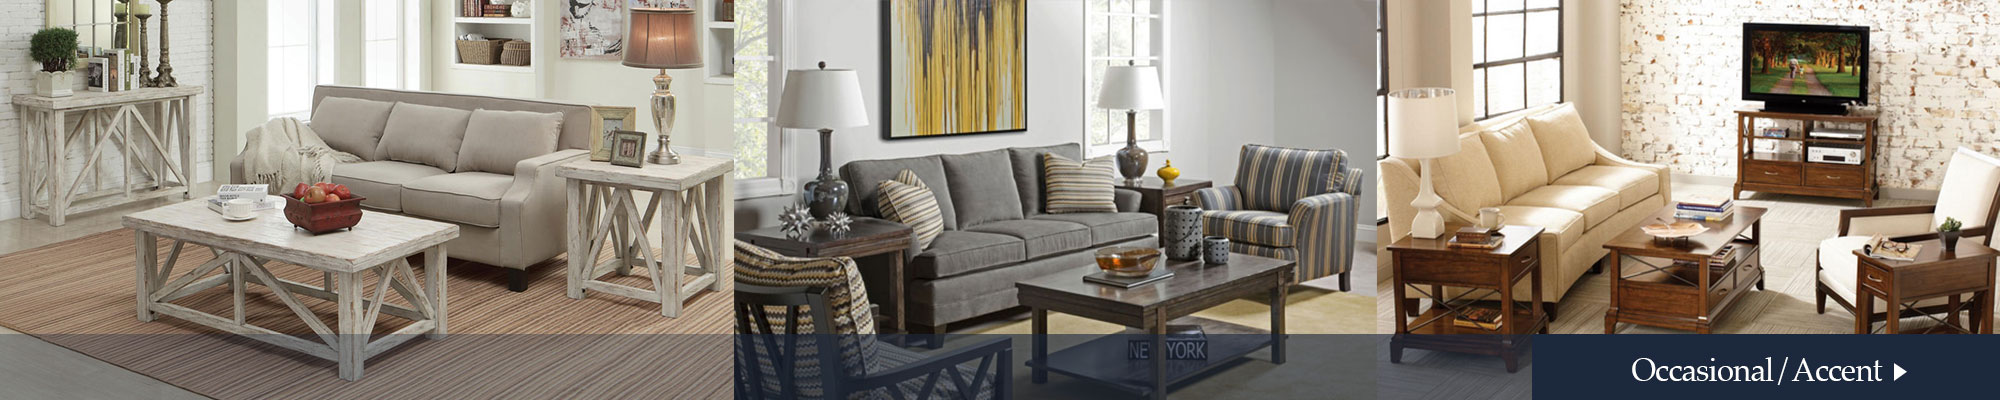 Furniture Store Cary Nc Furniture Showroom Designer Furniture Cary Nc